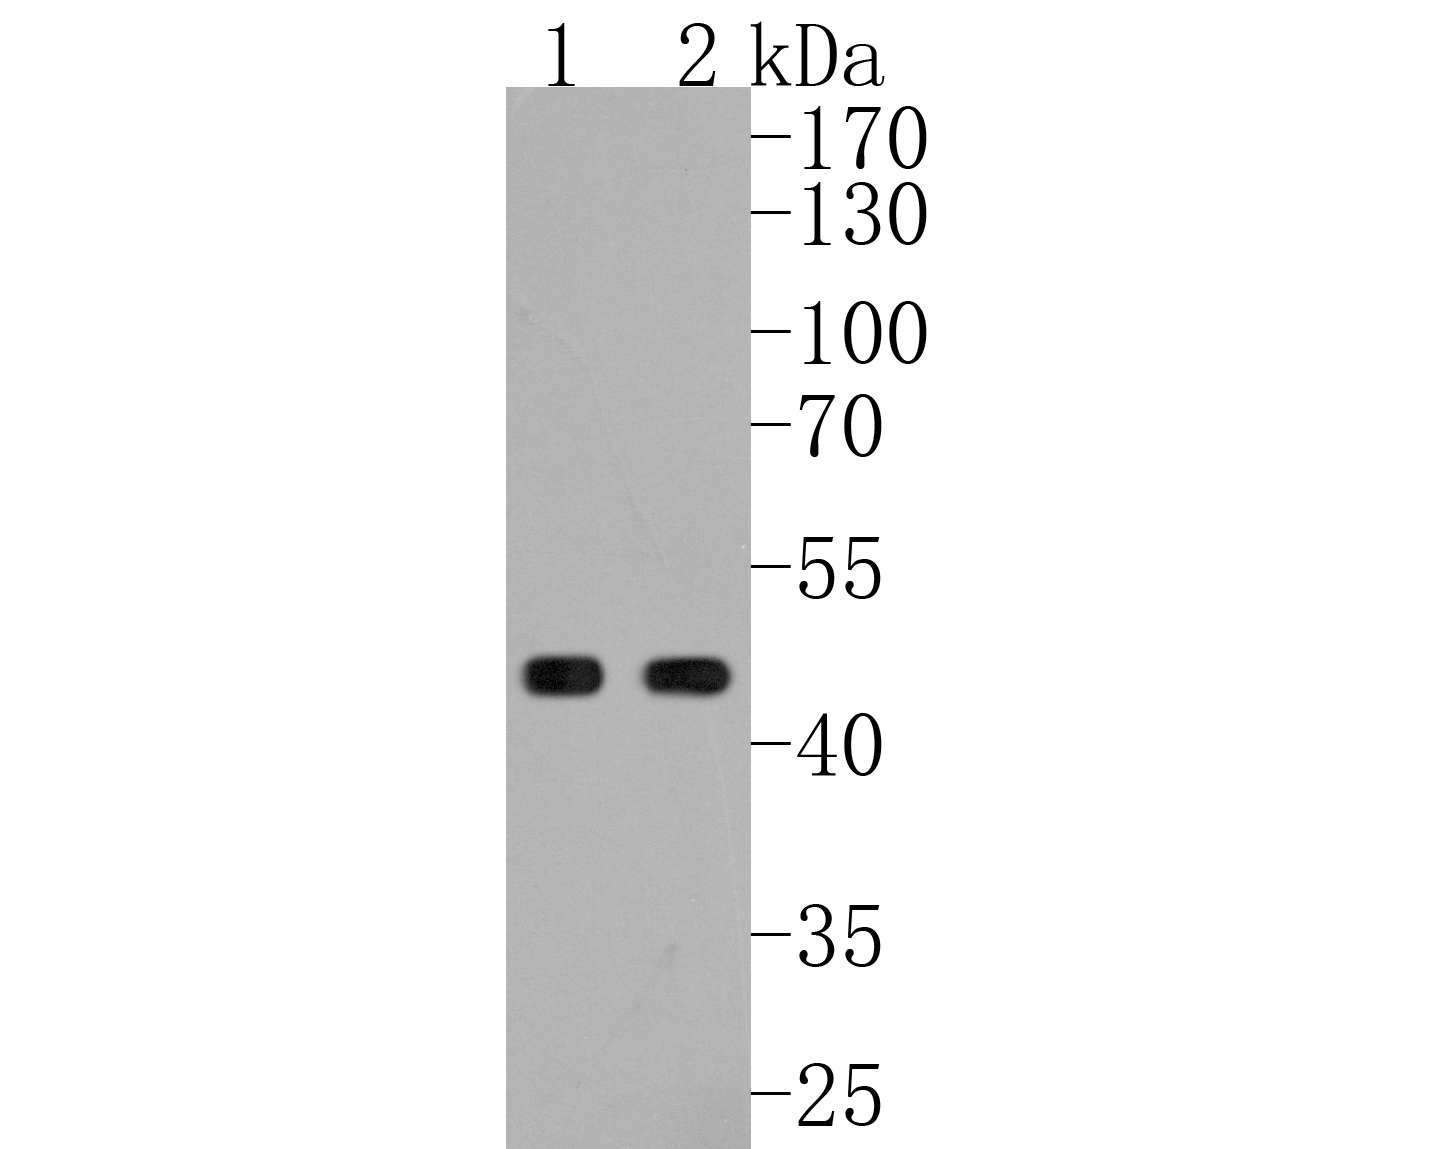 Western blot analysis of TSG101 on different lysates. Proteins were transferred to a PVDF membrane and blocked with 5% BSA in PBS for 1 hour at room temperature. The primary antibody (ET1701-59, 1/500) was used in 5% BSA at room temperature for 2 hours. Goat Anti-Rabbit IgG - HRP Secondary Antibody (HA1001) at 1:5,000 dilution was used for 1 hour at room temperature.<br /> Positive control: <br /> Lane 1: NIH/3T3 cell lysate<br /> Lane 2: Hela cell lysate